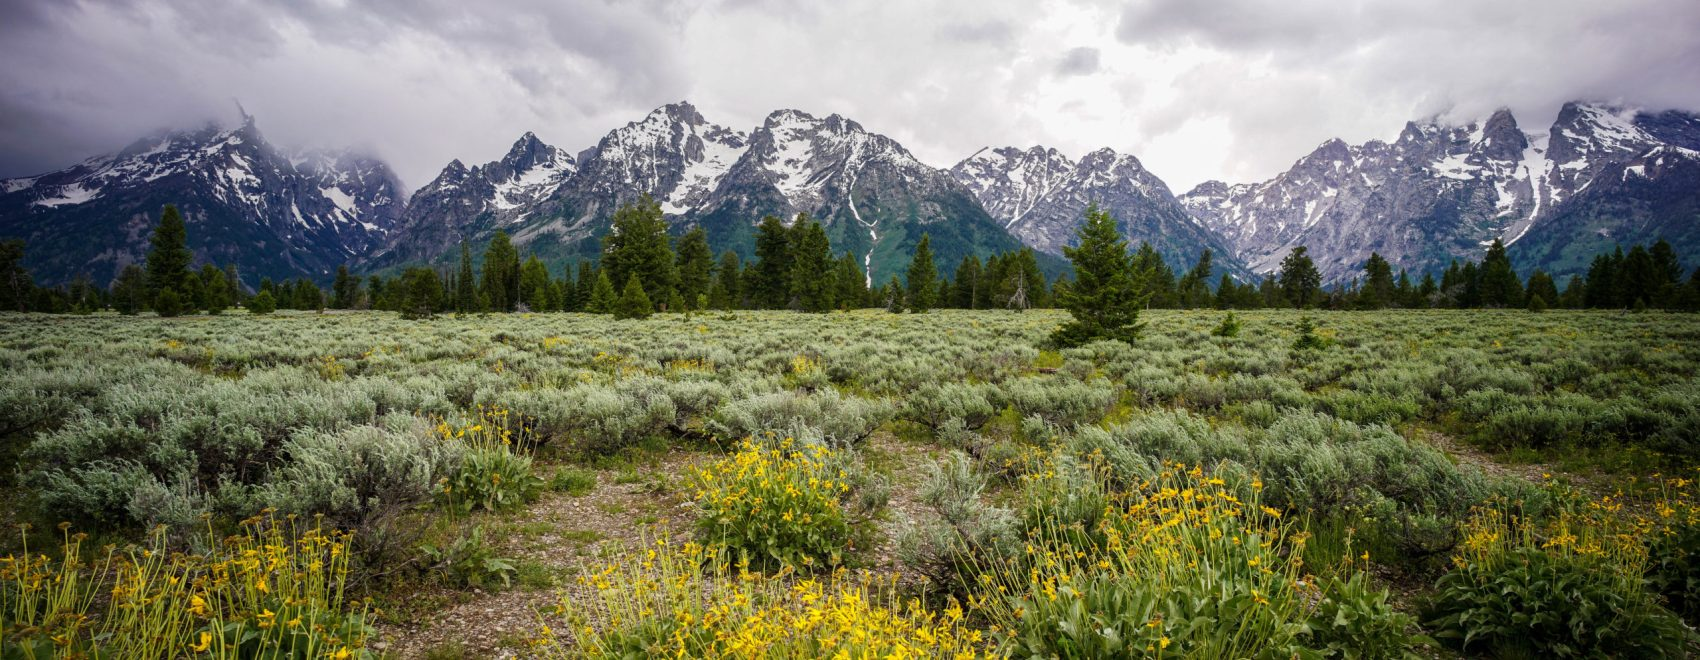 Grand Tetons photo by Jason Fitzpatrick